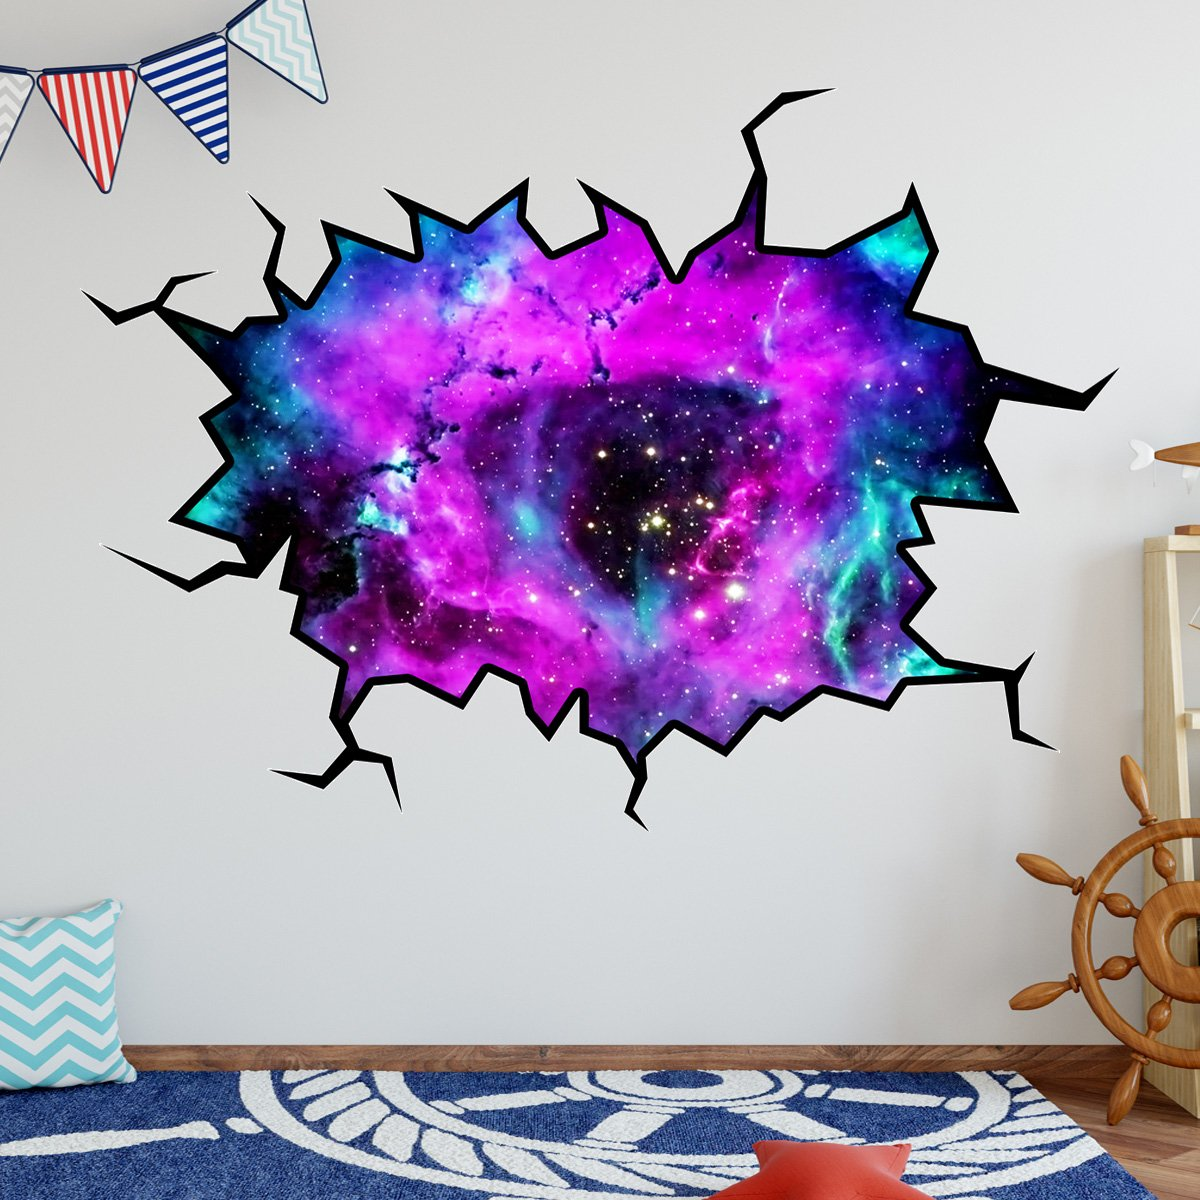 VWAQ Outer Space Galaxy Wall Crack Removable Peel & Stick Mural Decal - WC2 - VWAQ Vinyl Wall Art Quotes and Prints